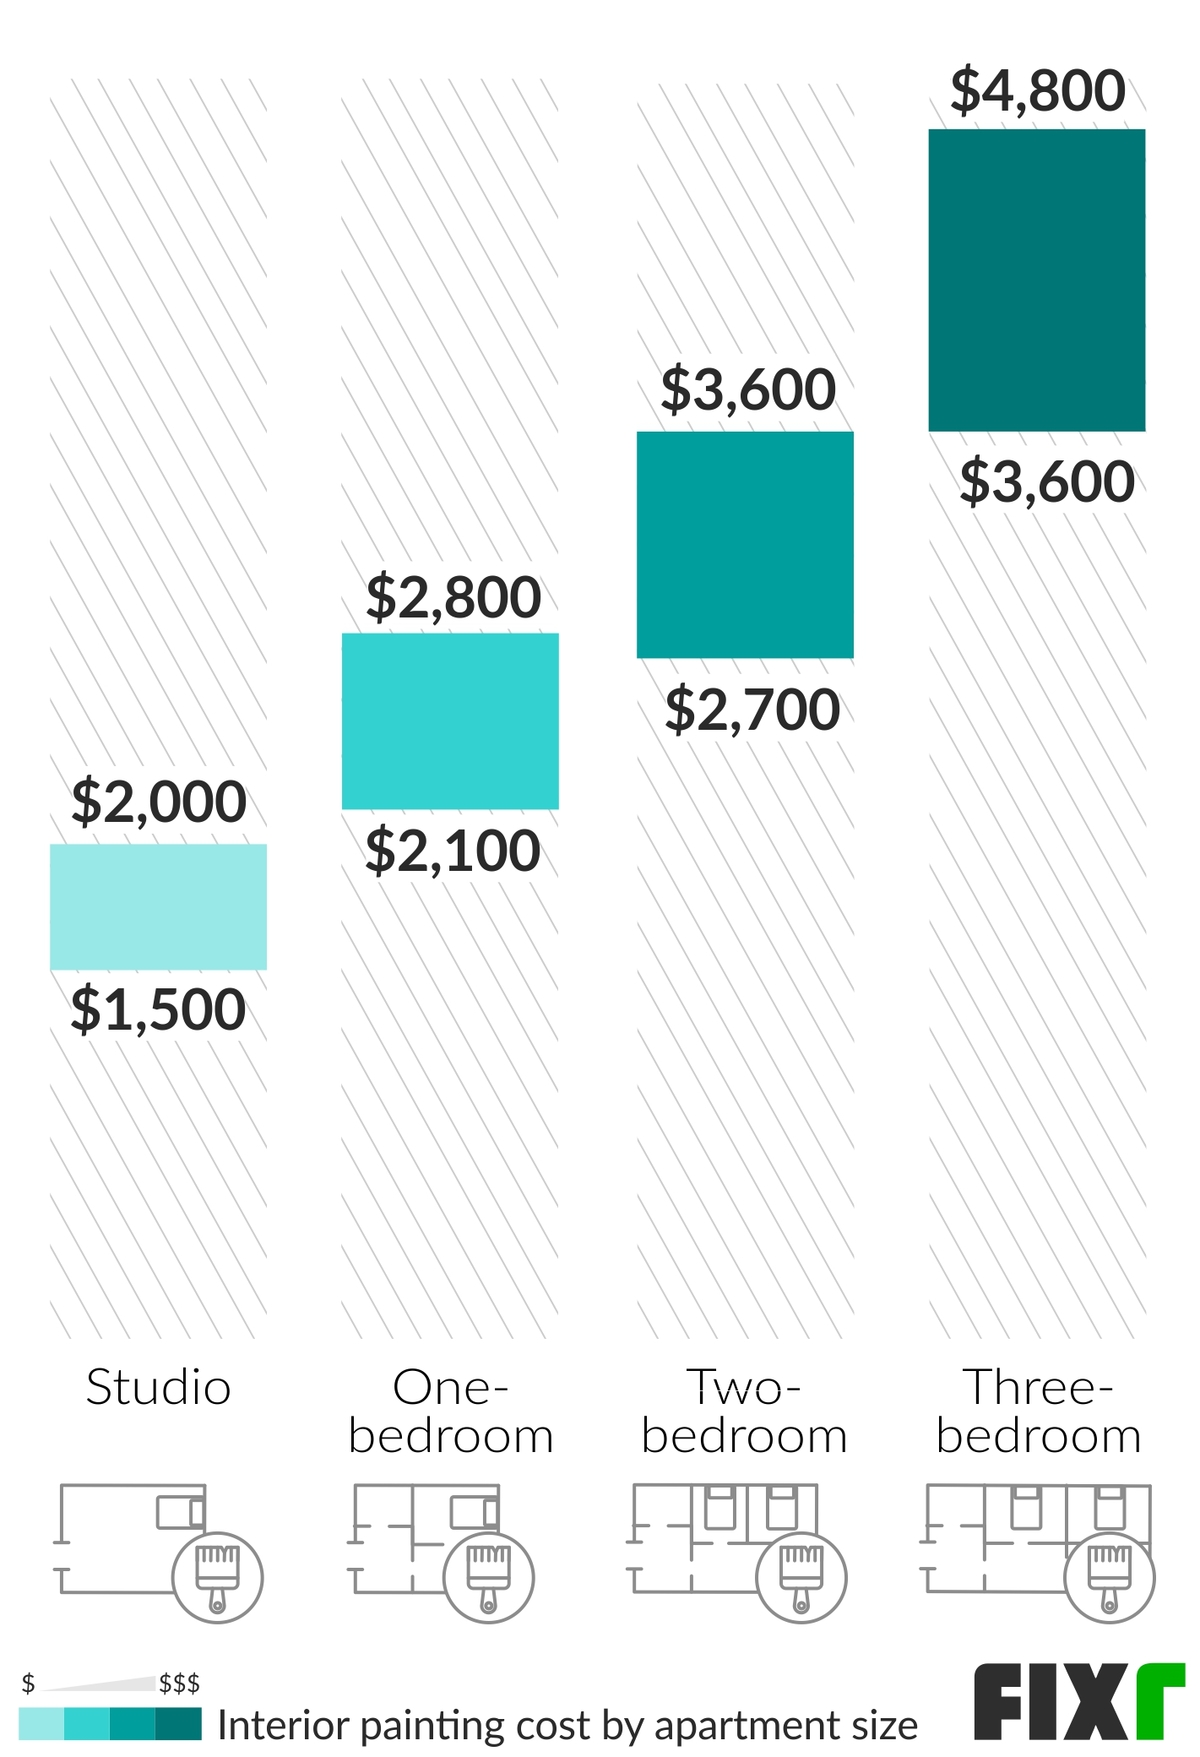 Cost to Paint a Studio, a One-Bedroom, Two-Bedroom, and Three-Bedroom Apartment